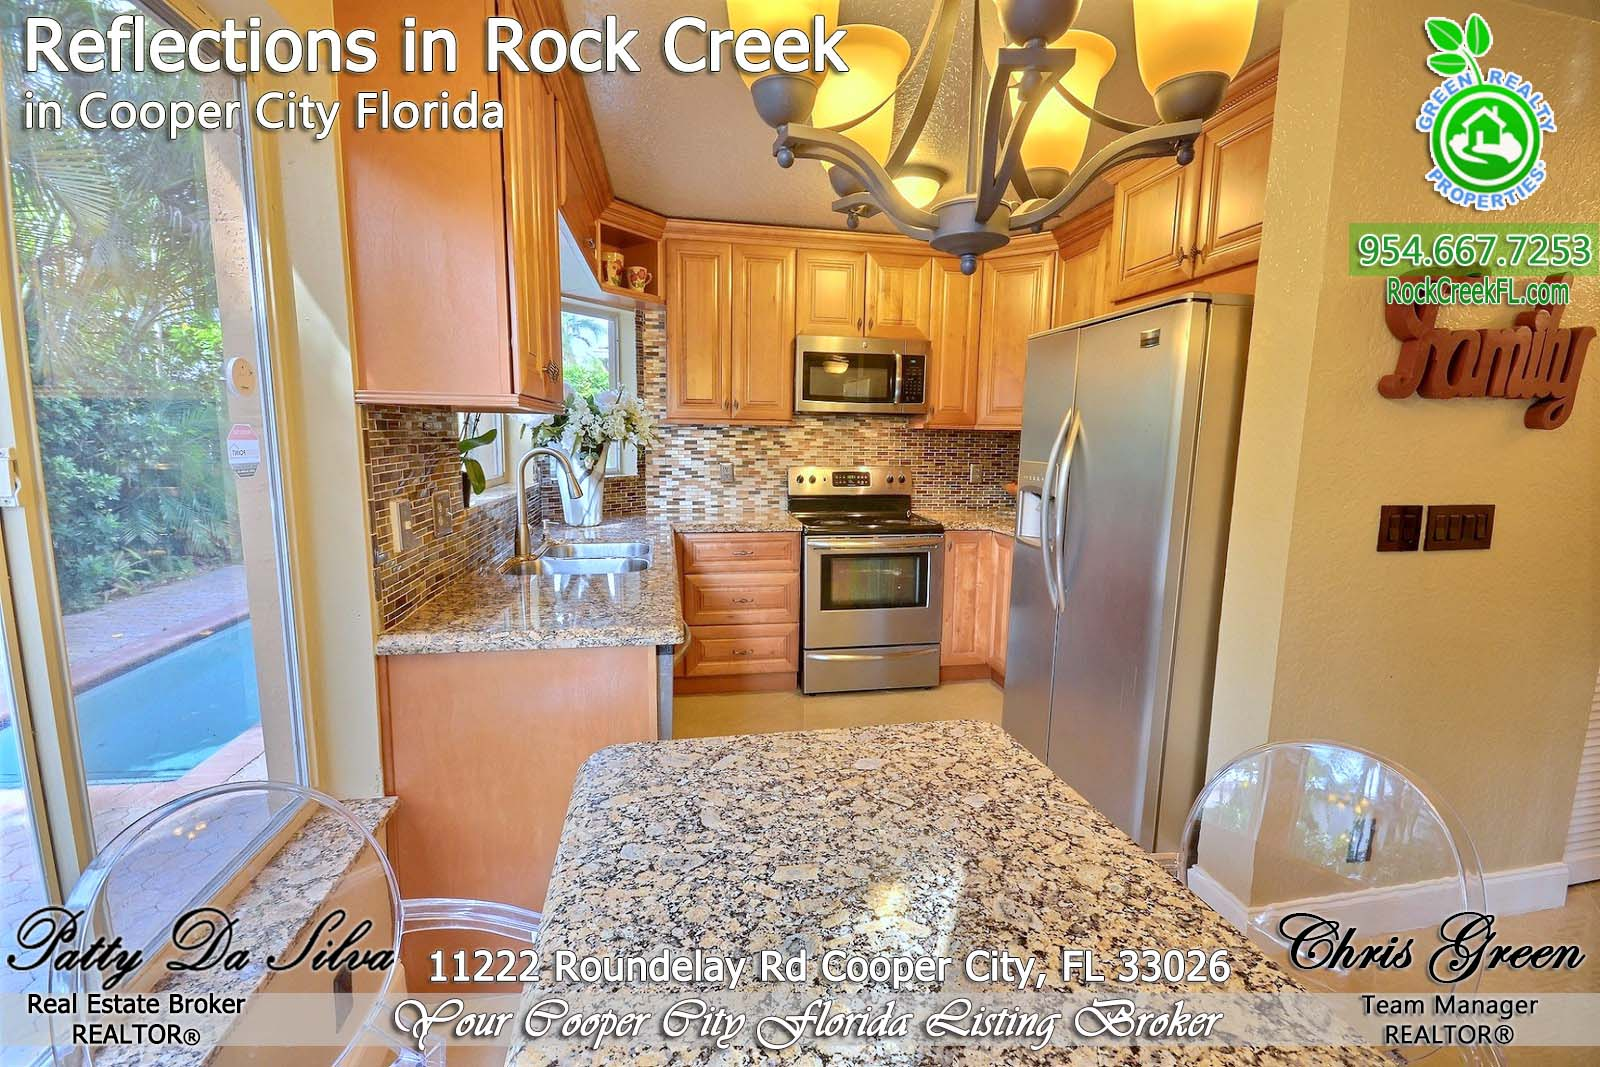 Cooper City Homes For Sale in Rock Creek Reflections